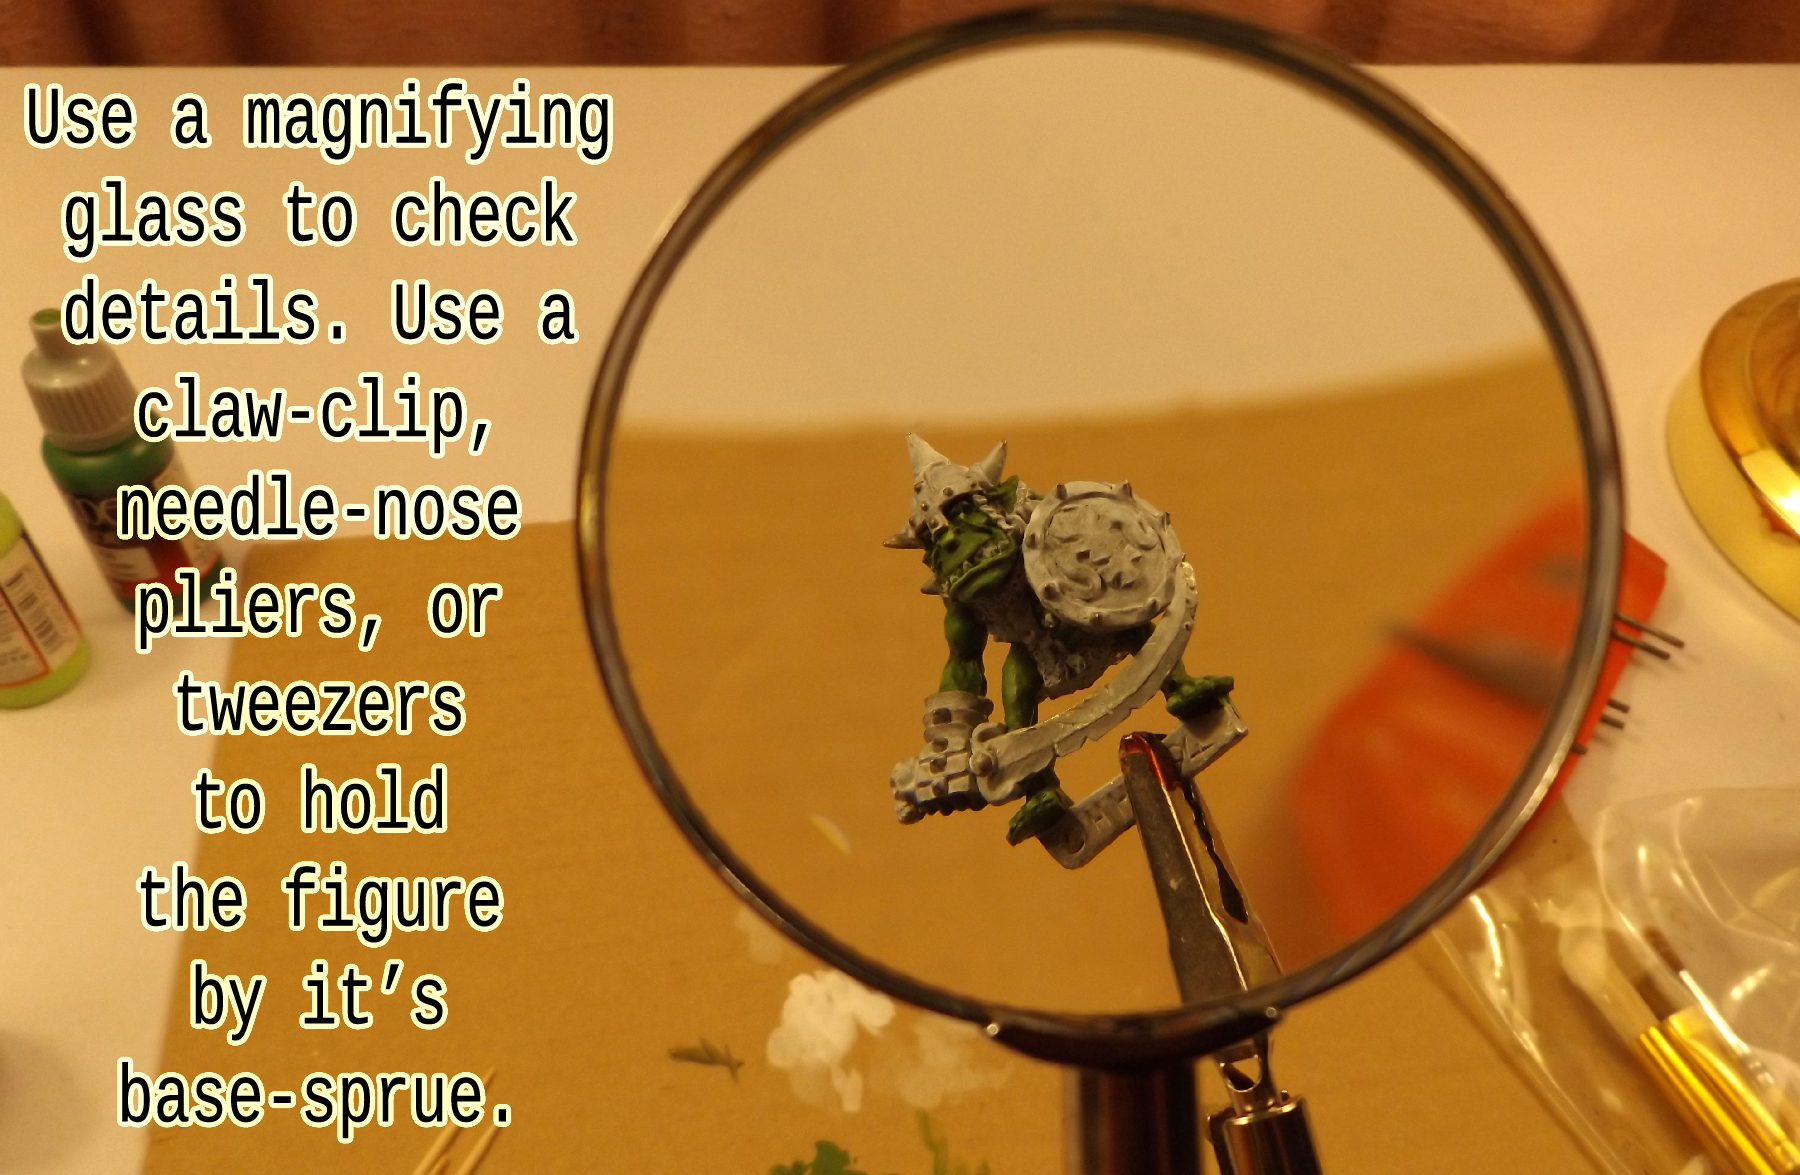 Use a magnifying glass to aid your eyes. Hold the figure with tools by the base-sprue.